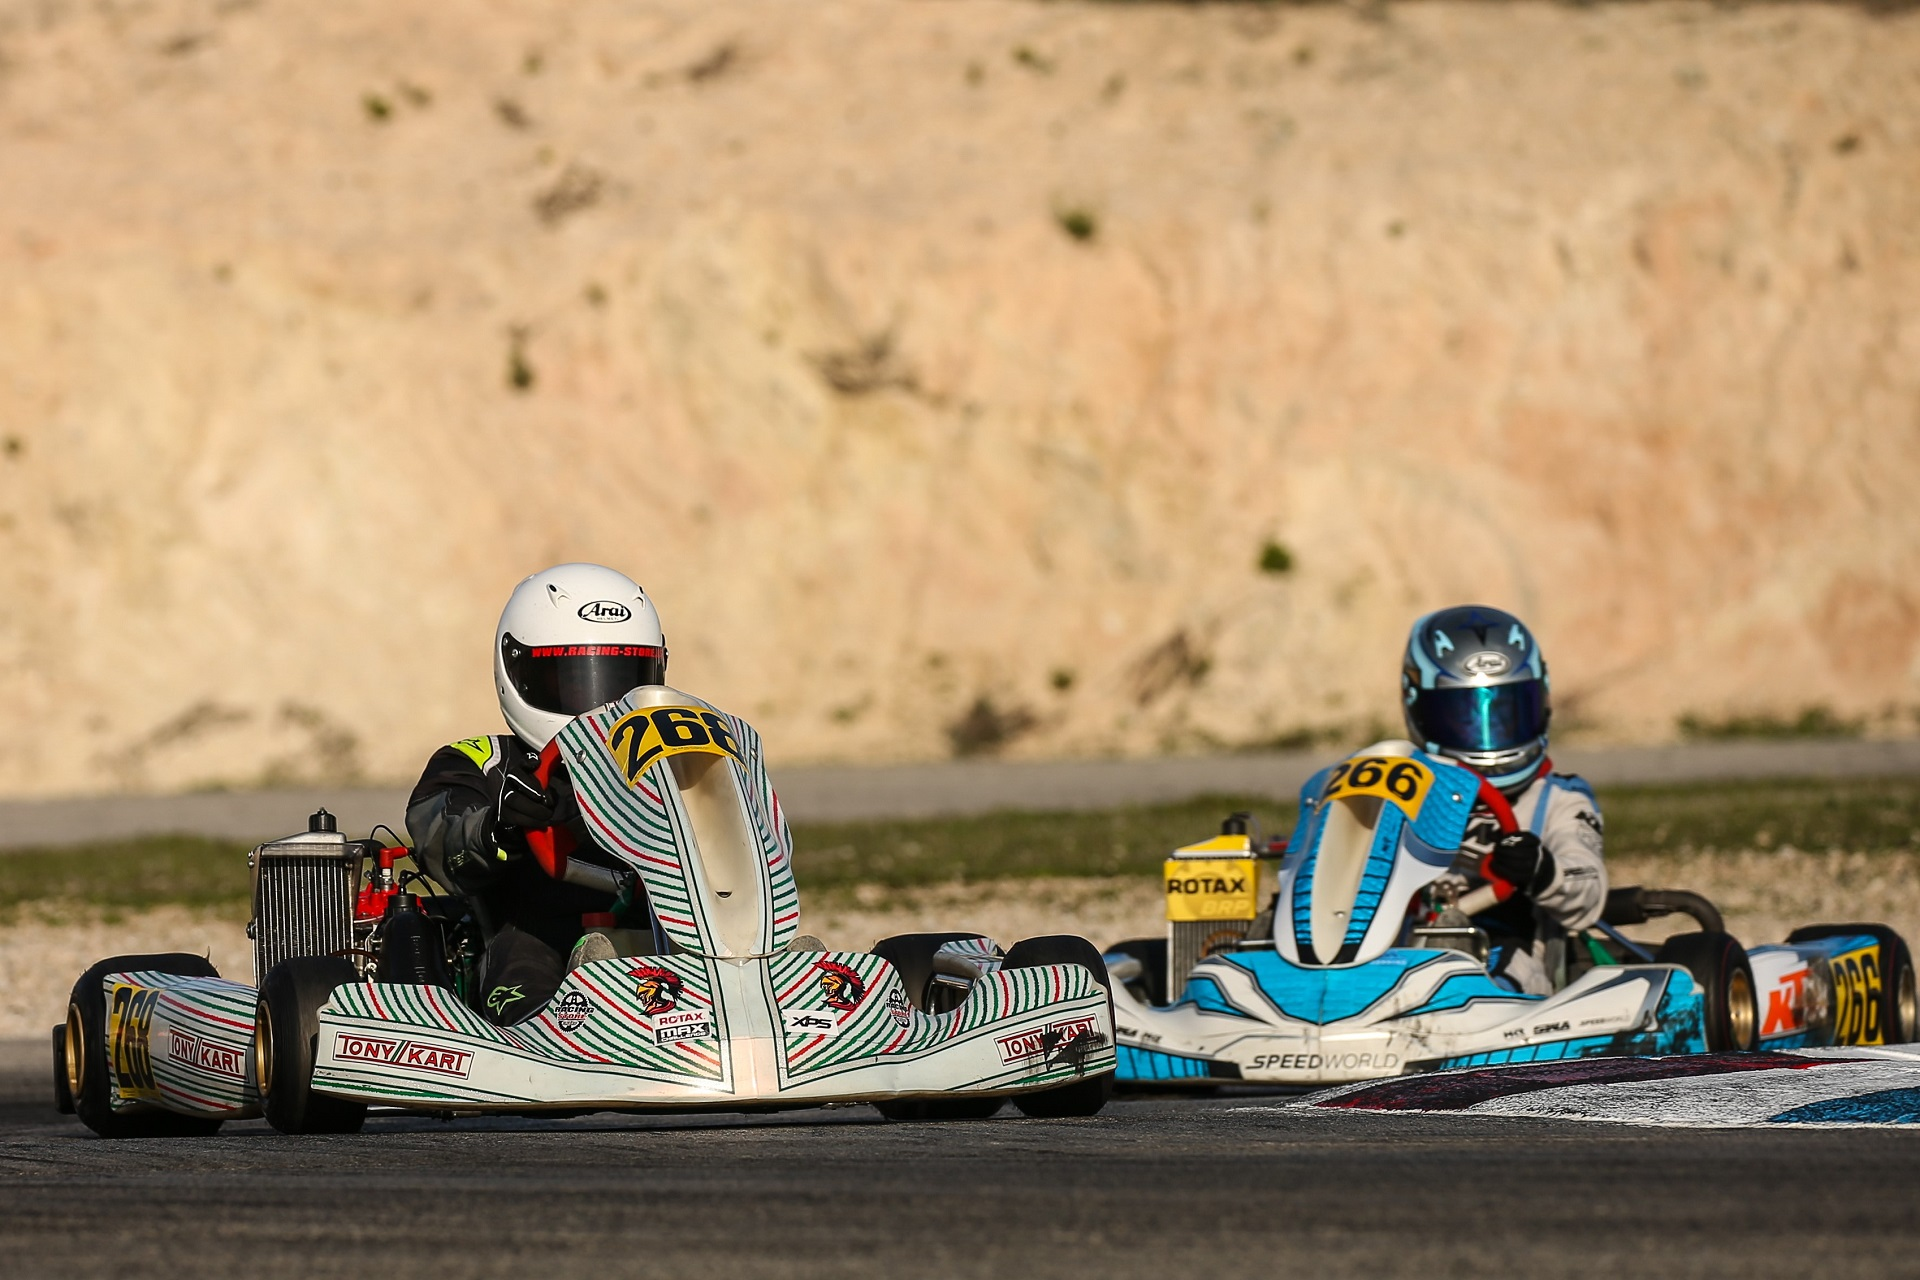 Pernía foi 23.º classificado e Dinis prosseguiu evolução na Rotax Winter Cup Júnior